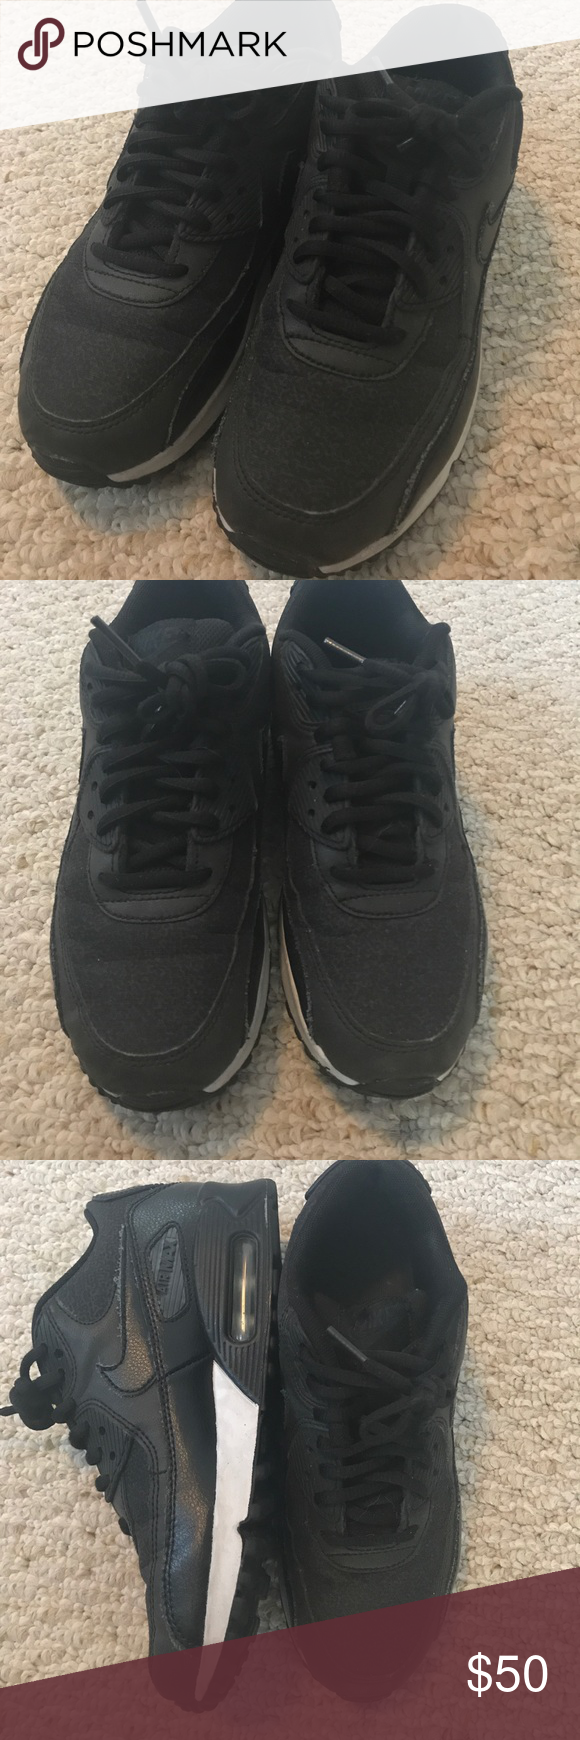 NIKE U.S. Size 6 Air Max Worn a handful of times - Very Good  condition nike Shoes Sneakers